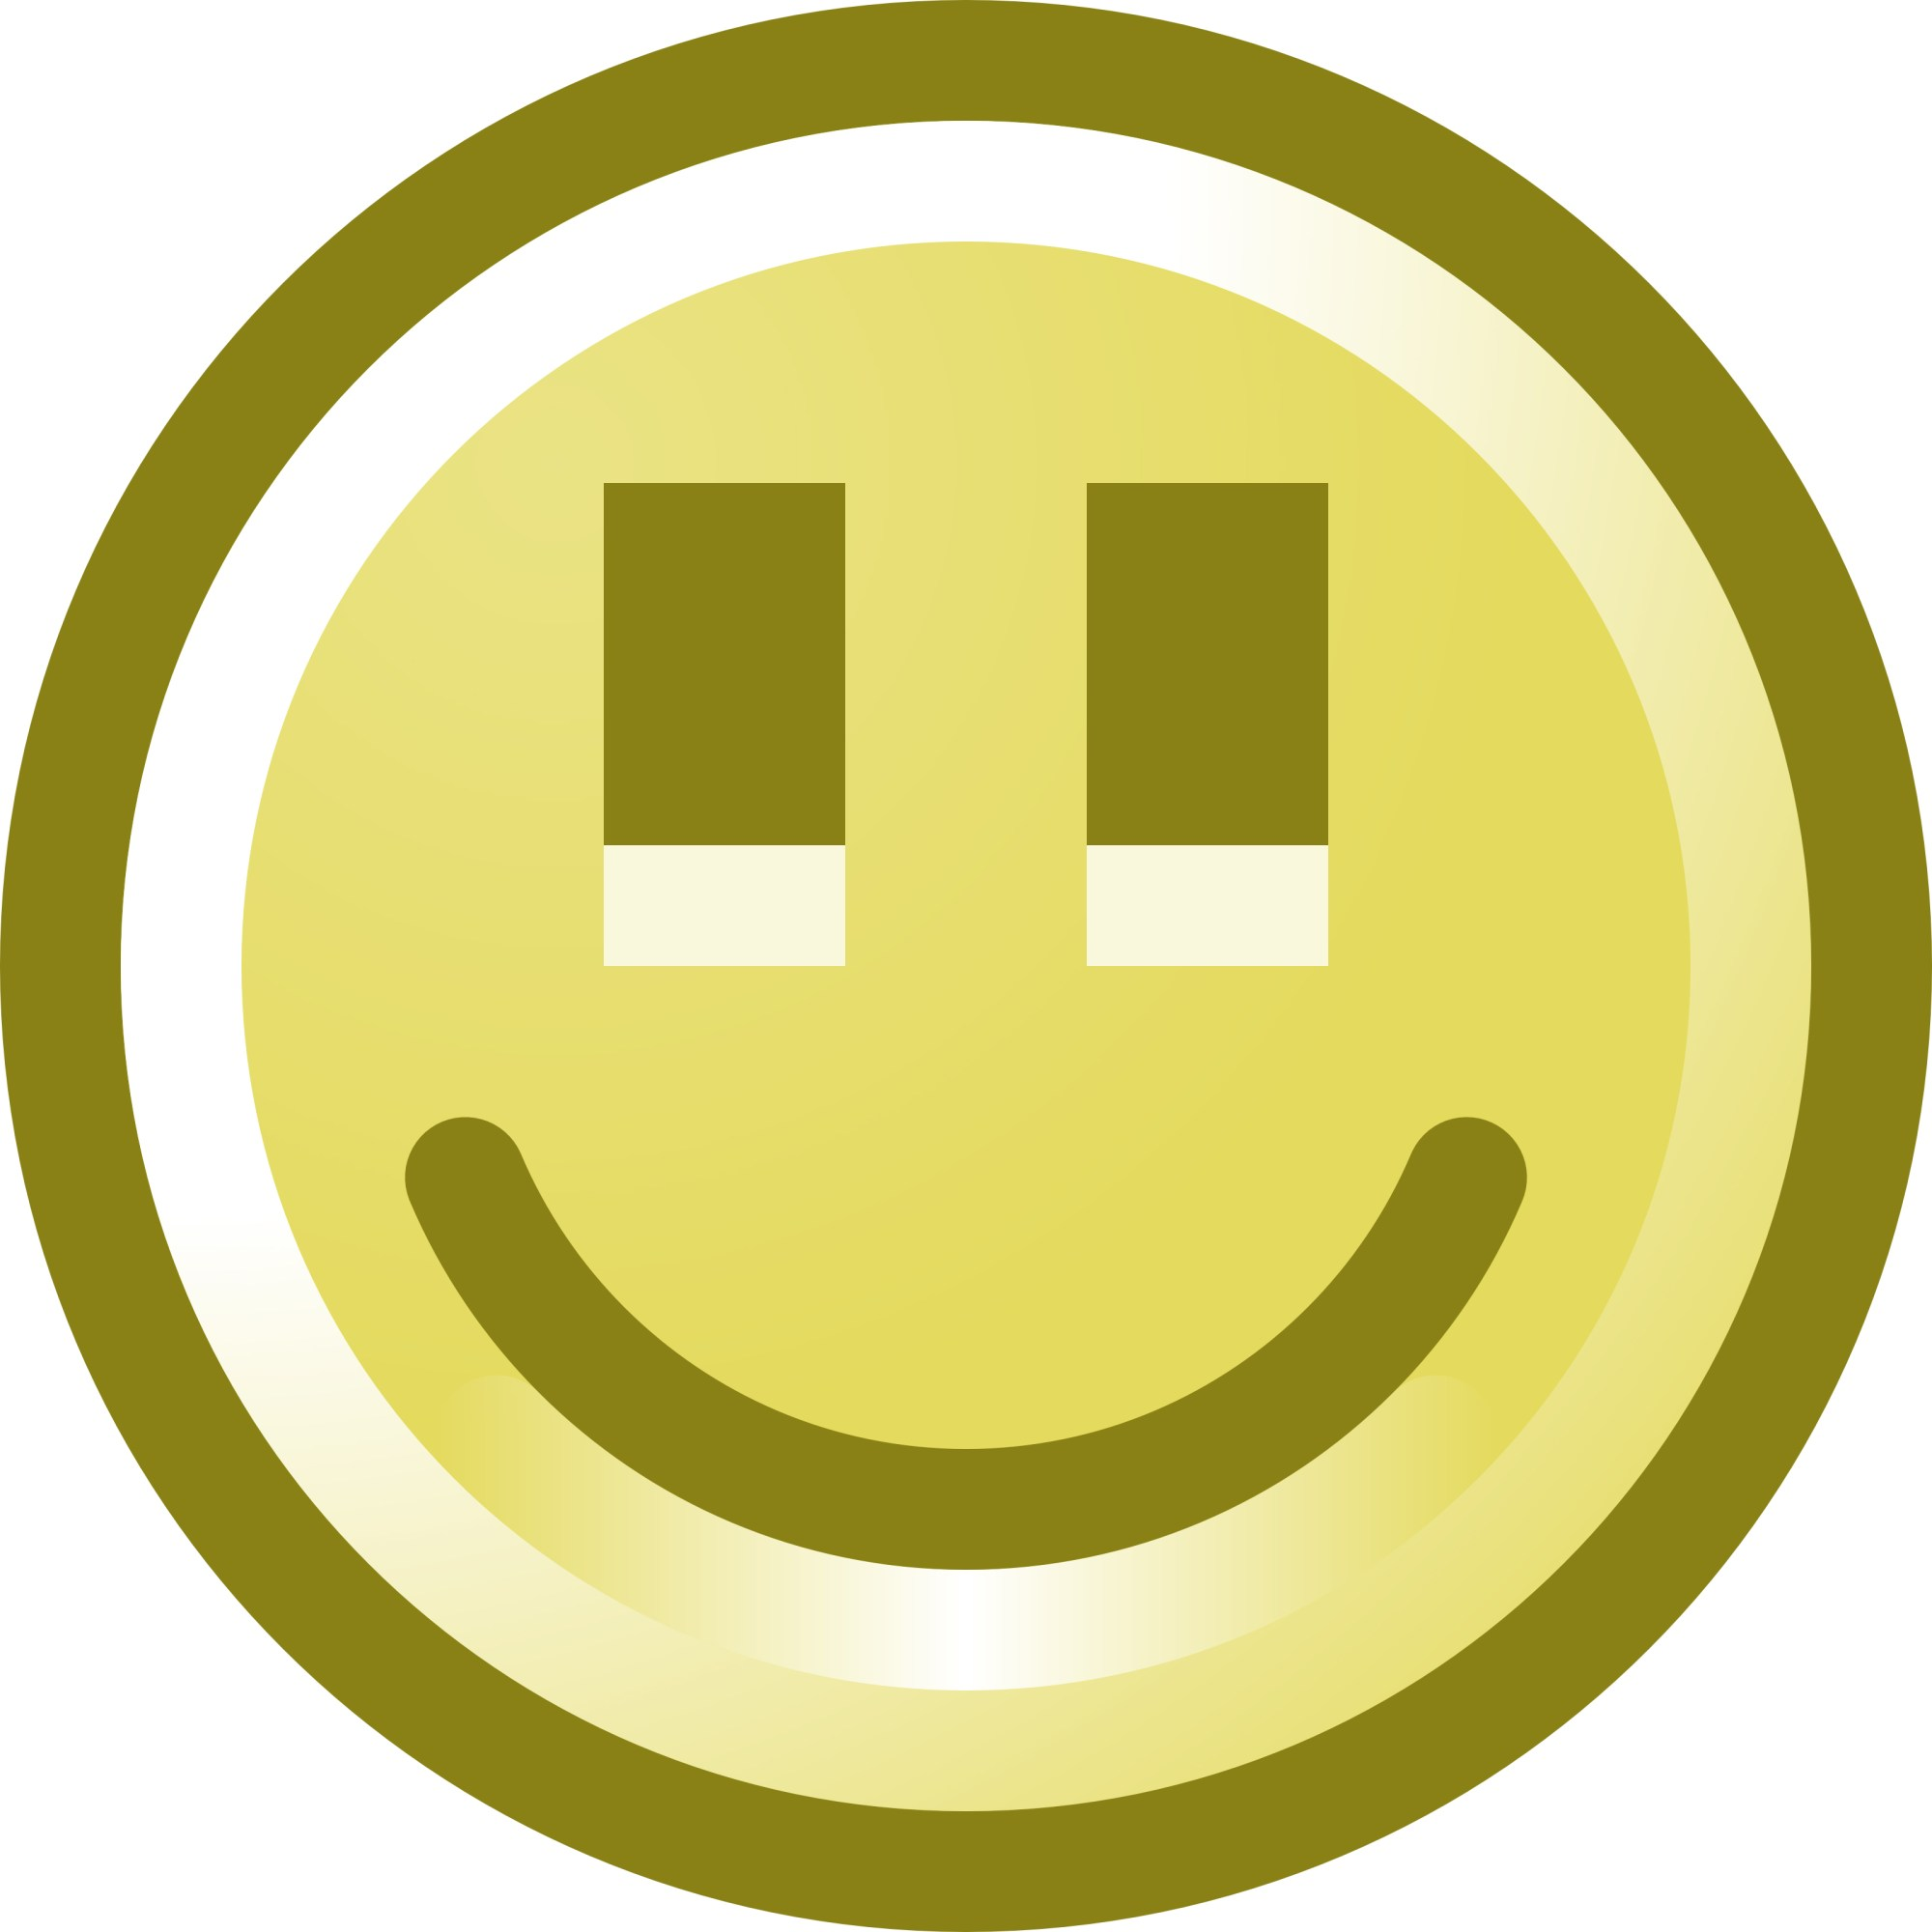 hight resolution of smile clip art free clipart library free clipart images